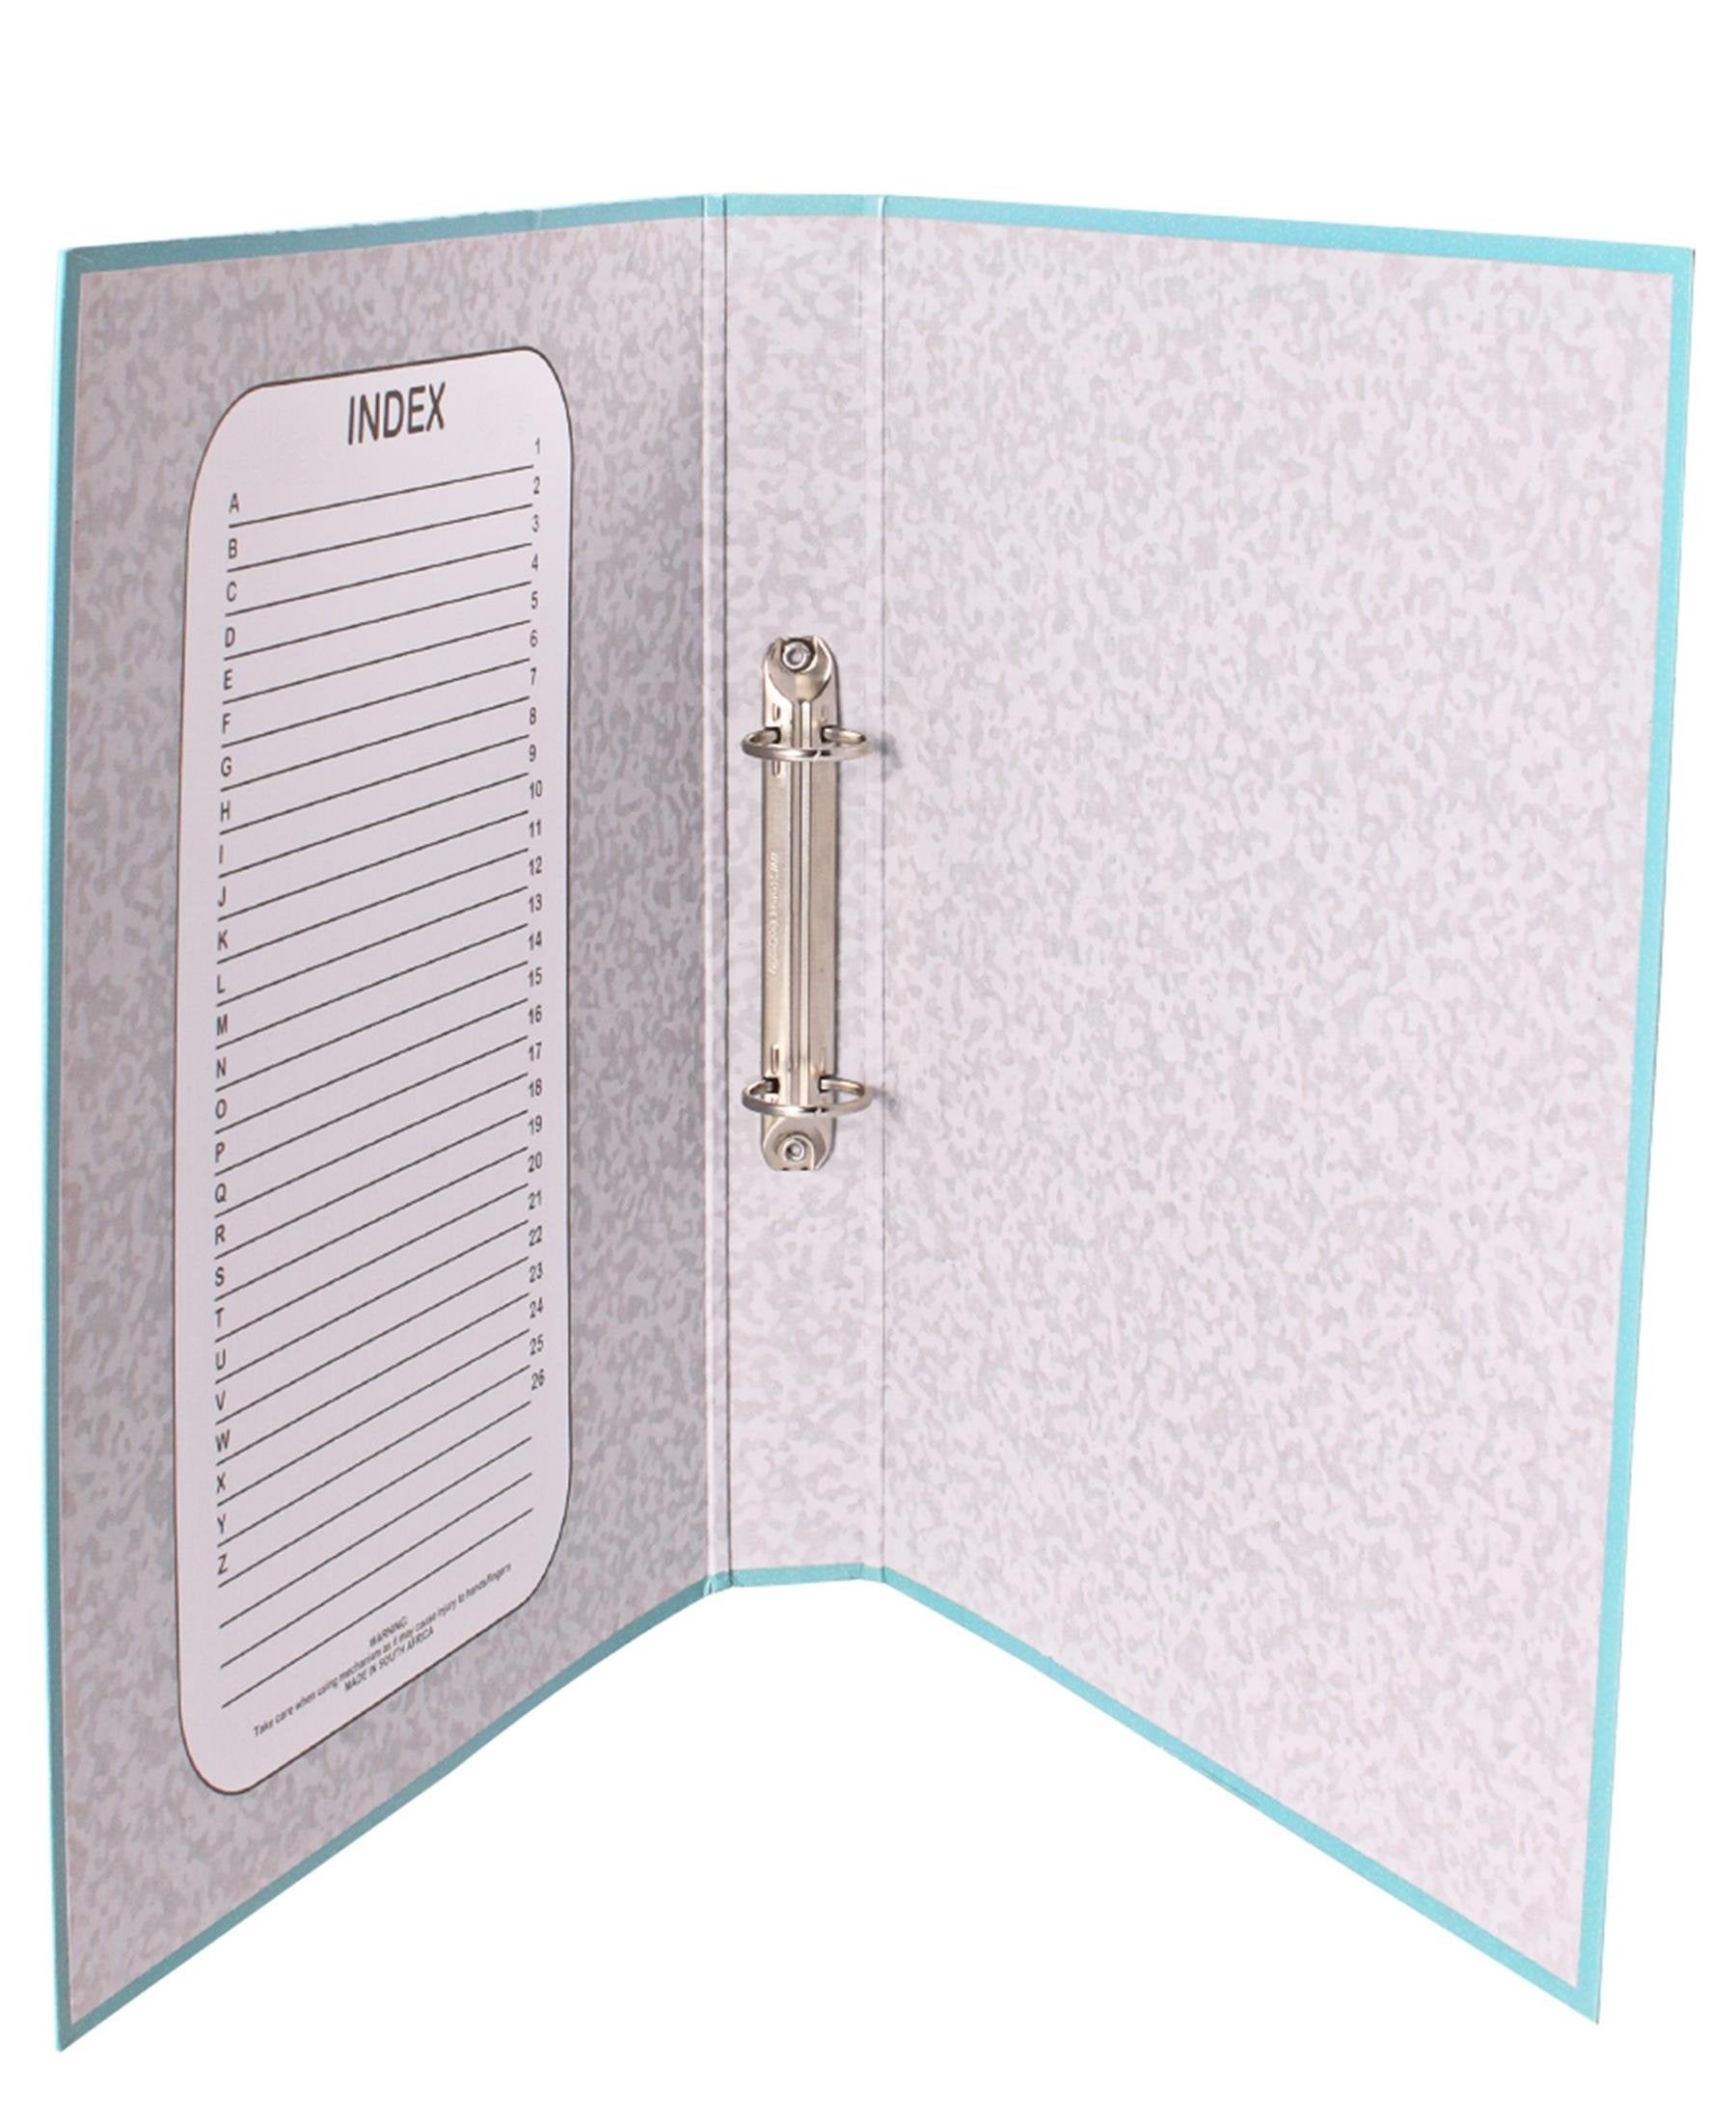 Marlin Ring Binder File - Turquoise